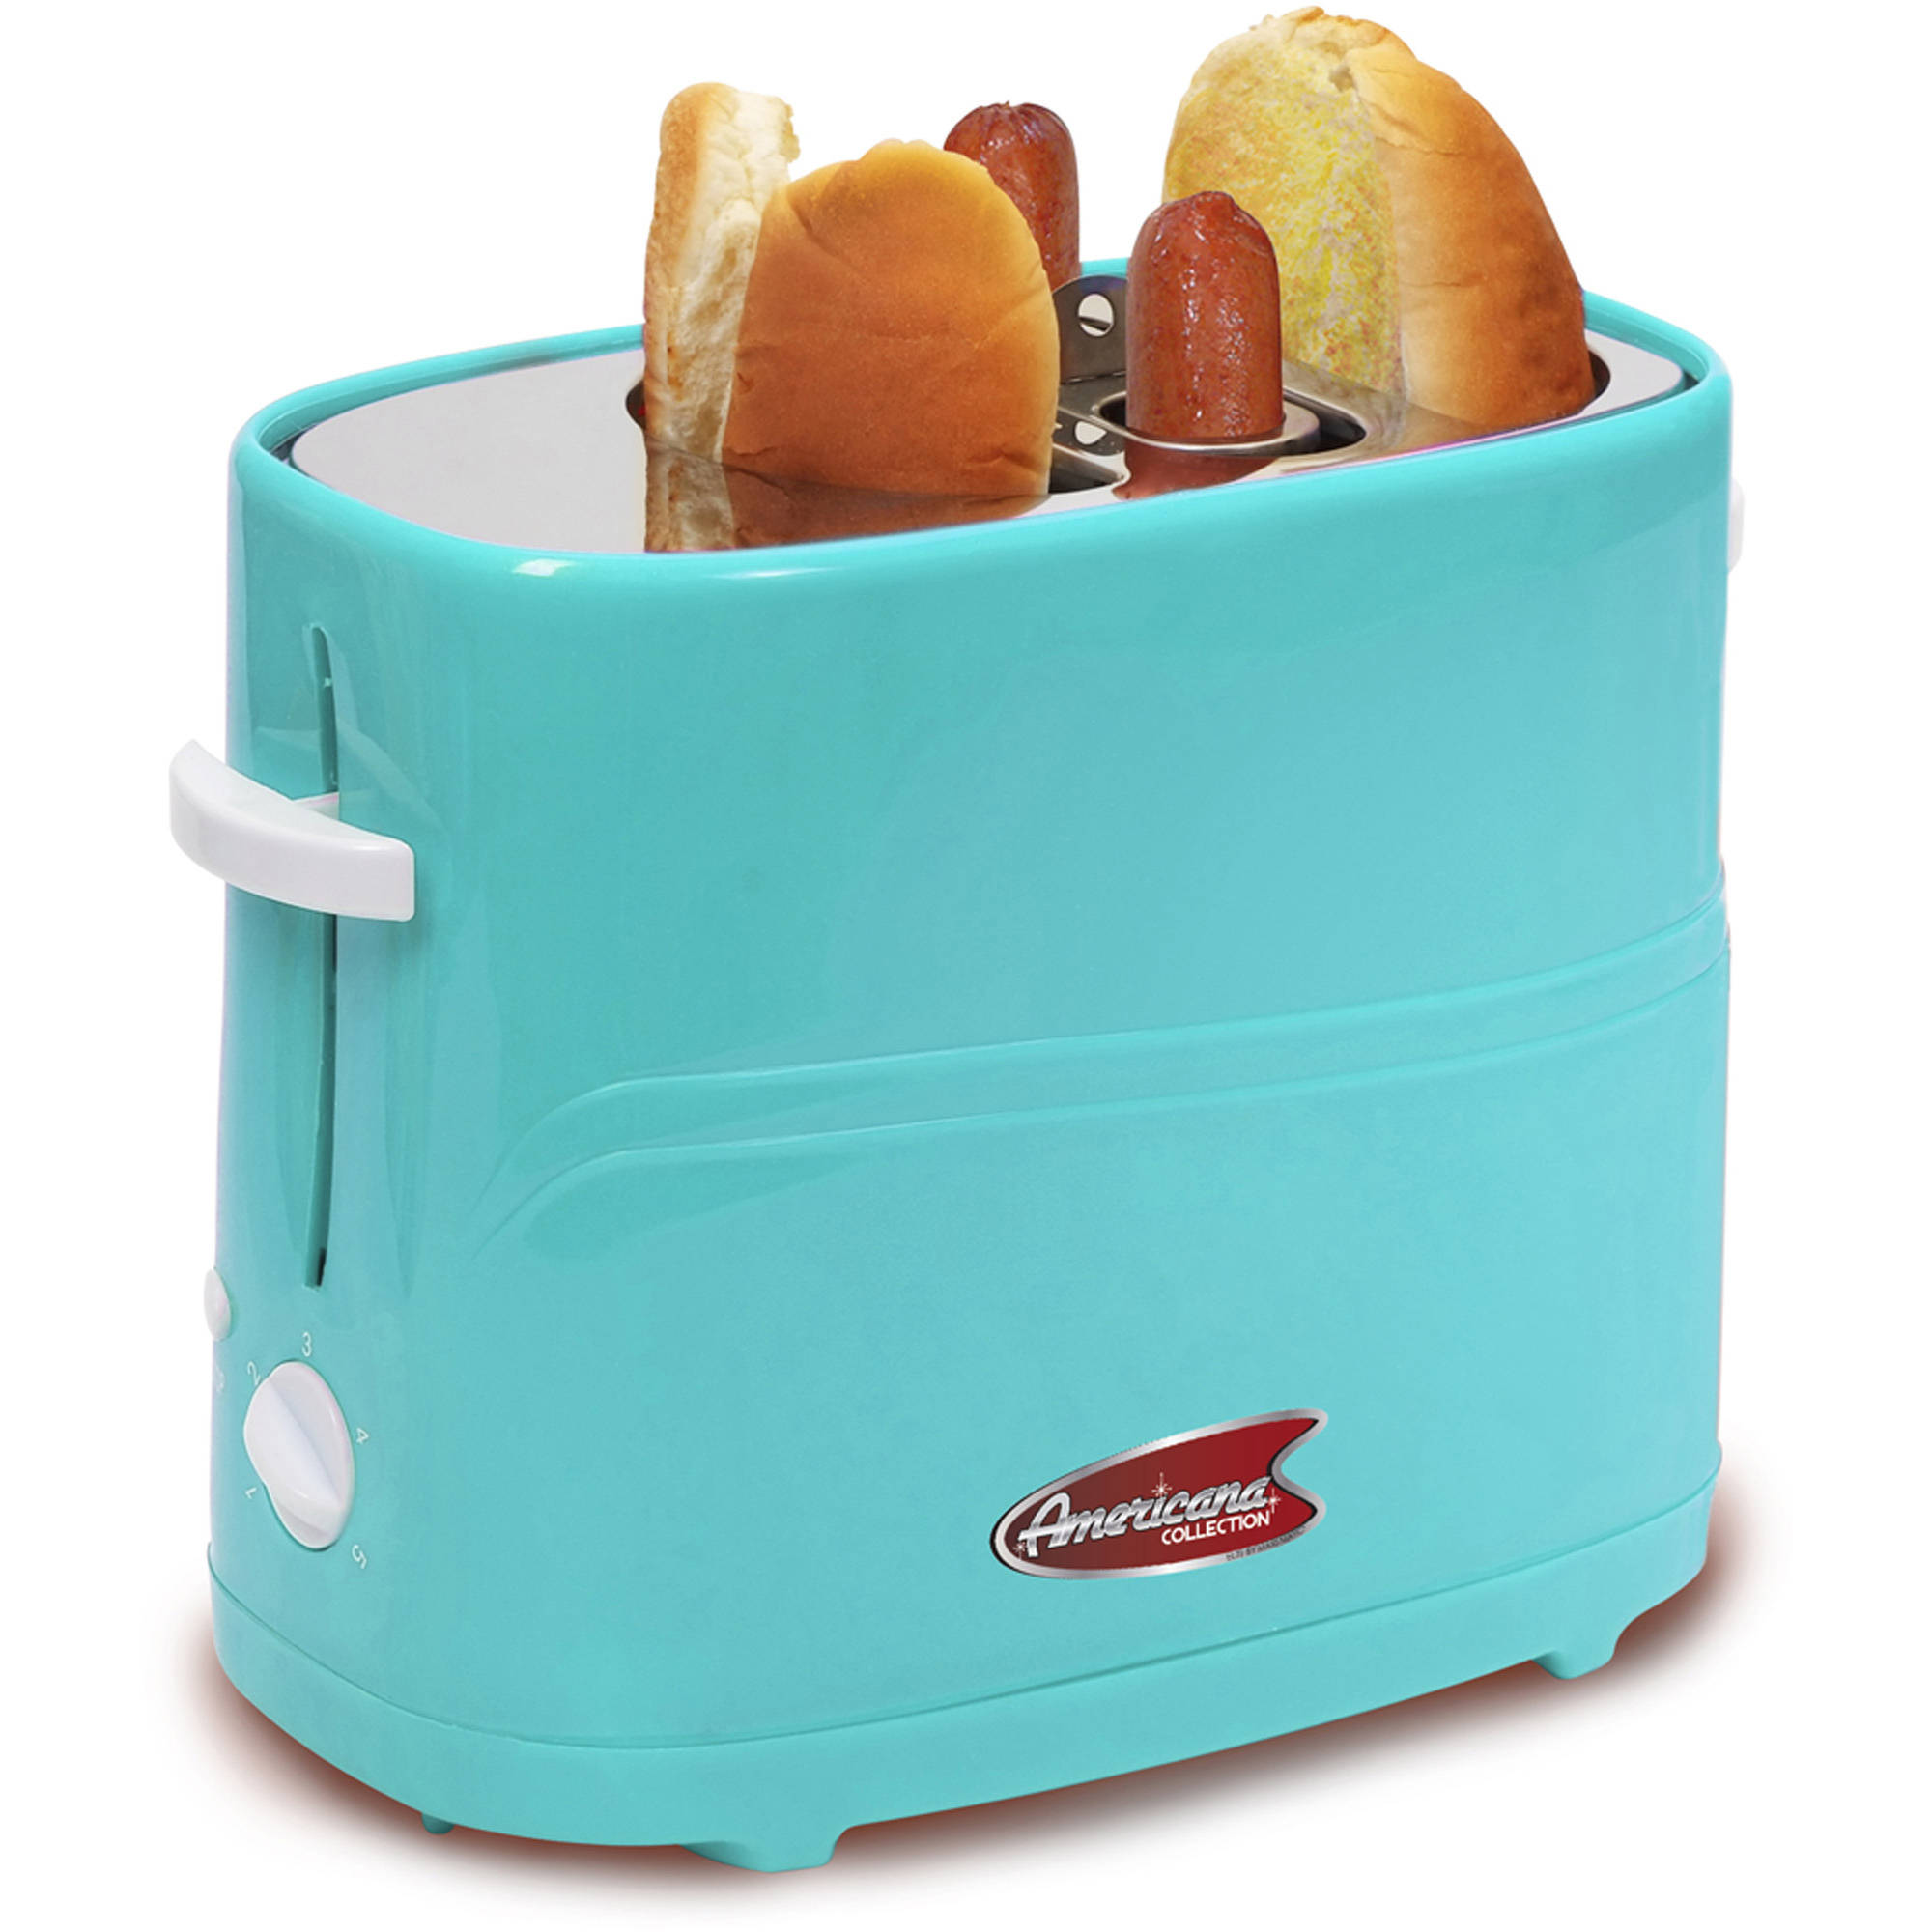 Elite Cuisine ECT-304BL Hot Dog Toaster, Mint Blue